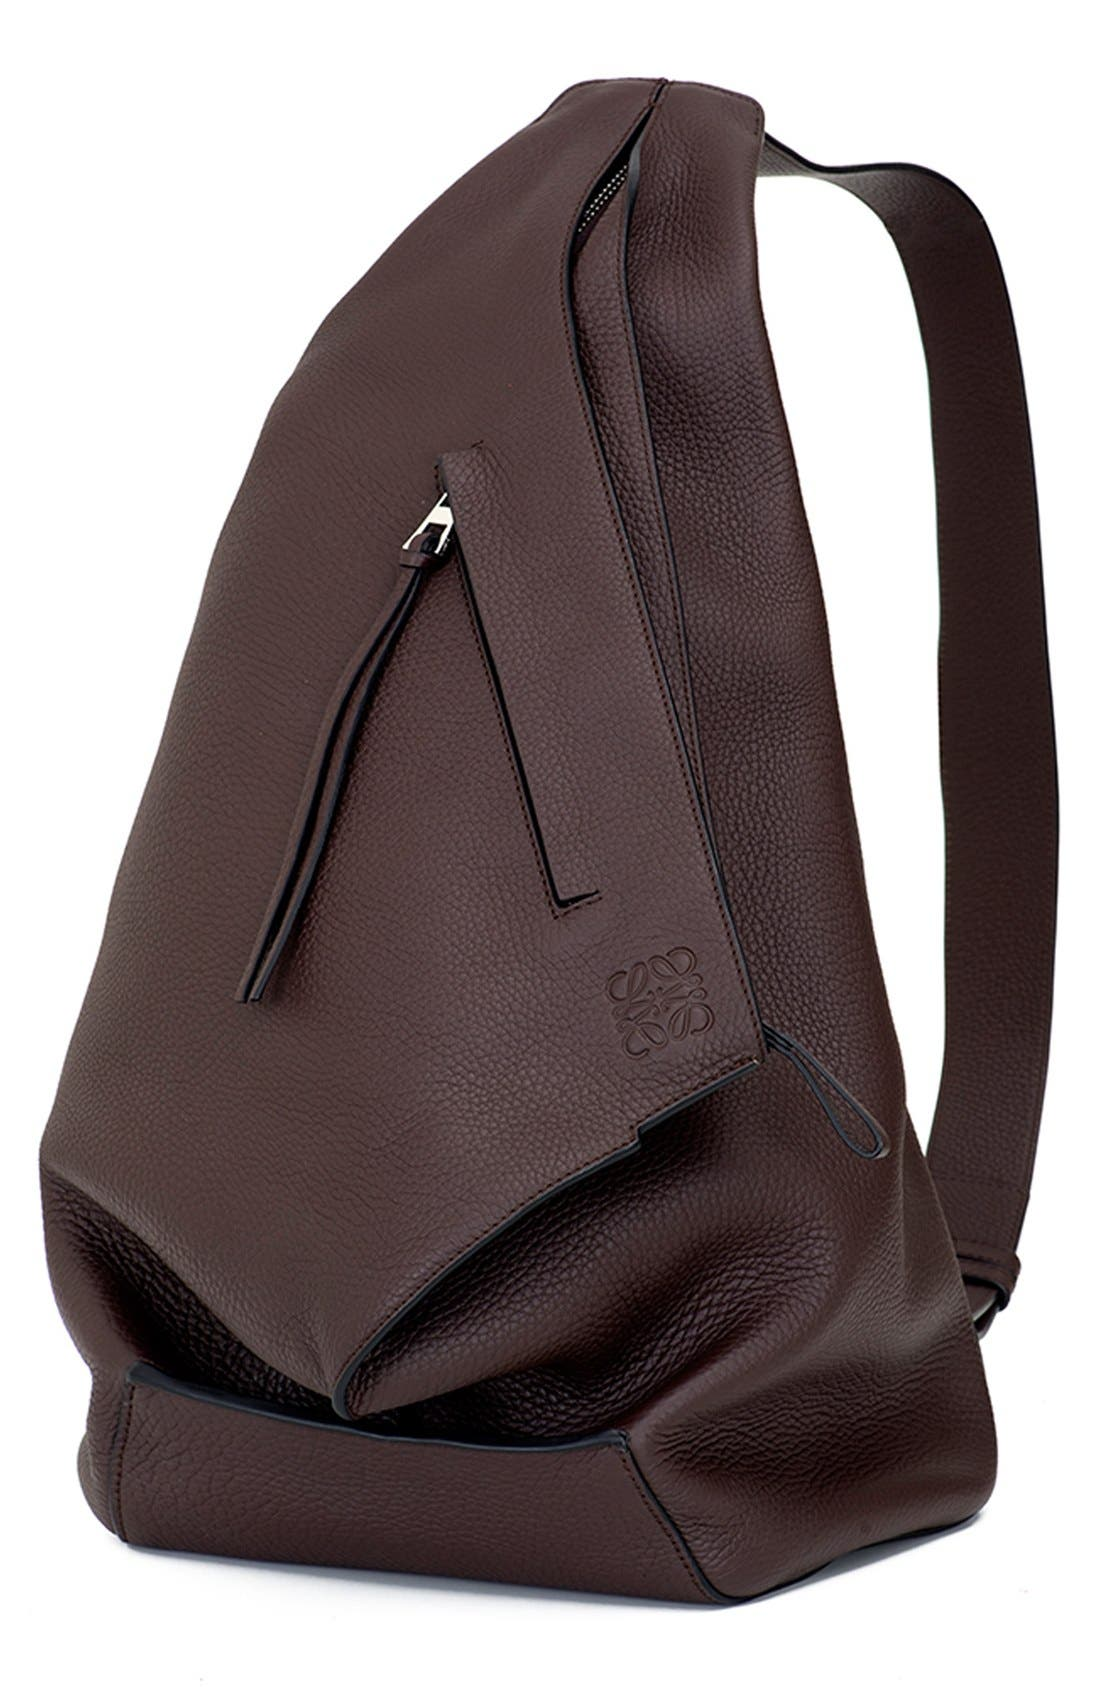 LOEWE 'Anton' Calfskin Leather Backpack, Main, color, 240